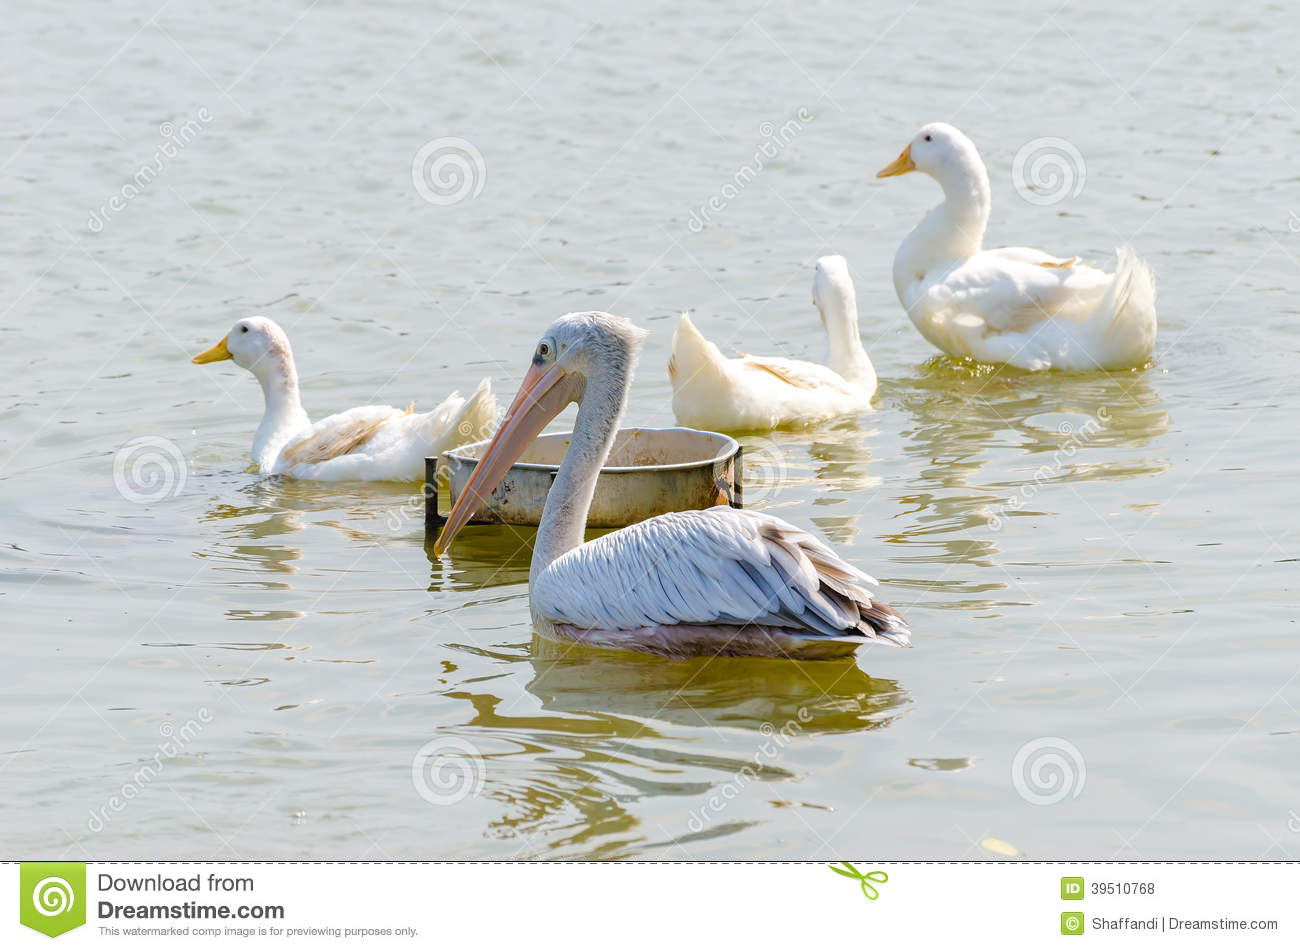 White Pelican and White Duck